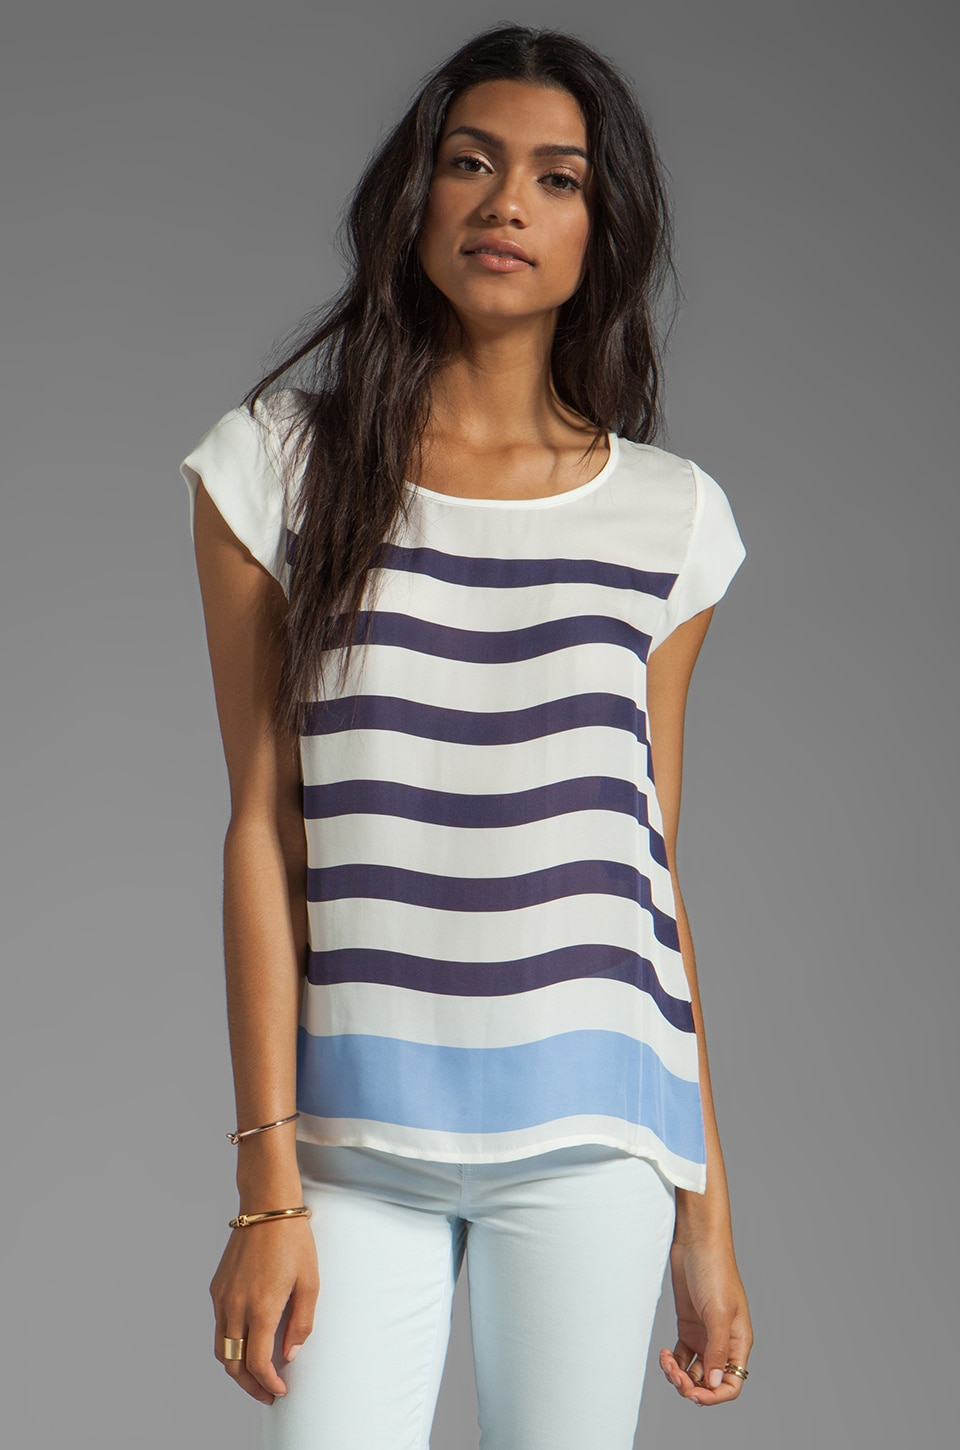 Joie Terry Stripe Print Top in Blue Violet